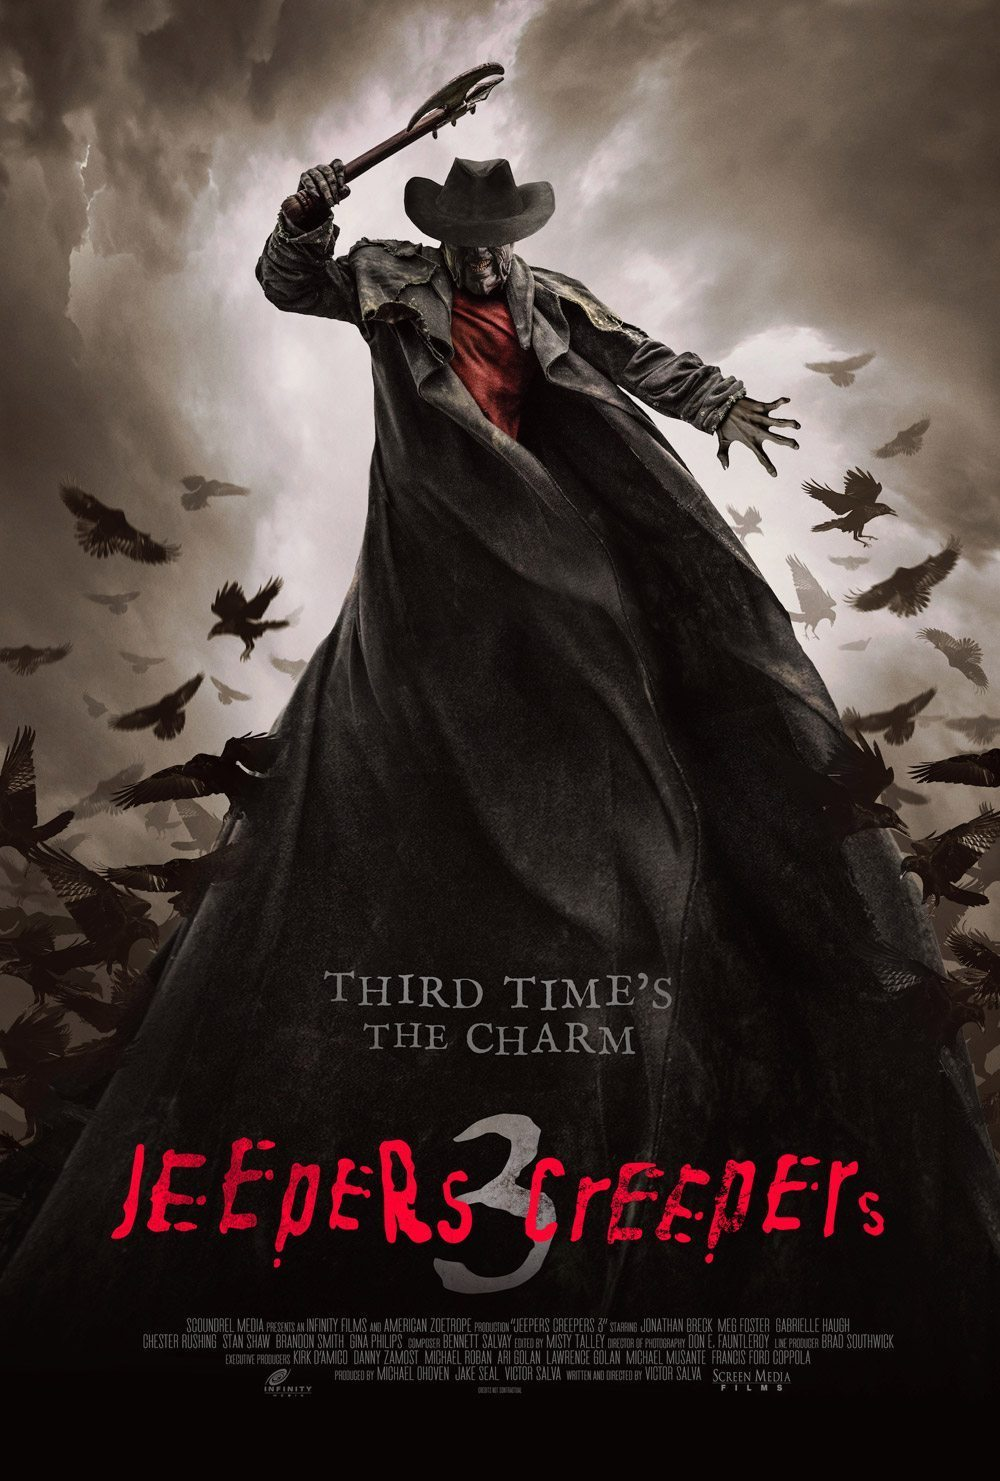 jeepers creepers 3x2 1 - Confirmed: Jeepers Creepers 3 Will Air on Syfy October 28/29